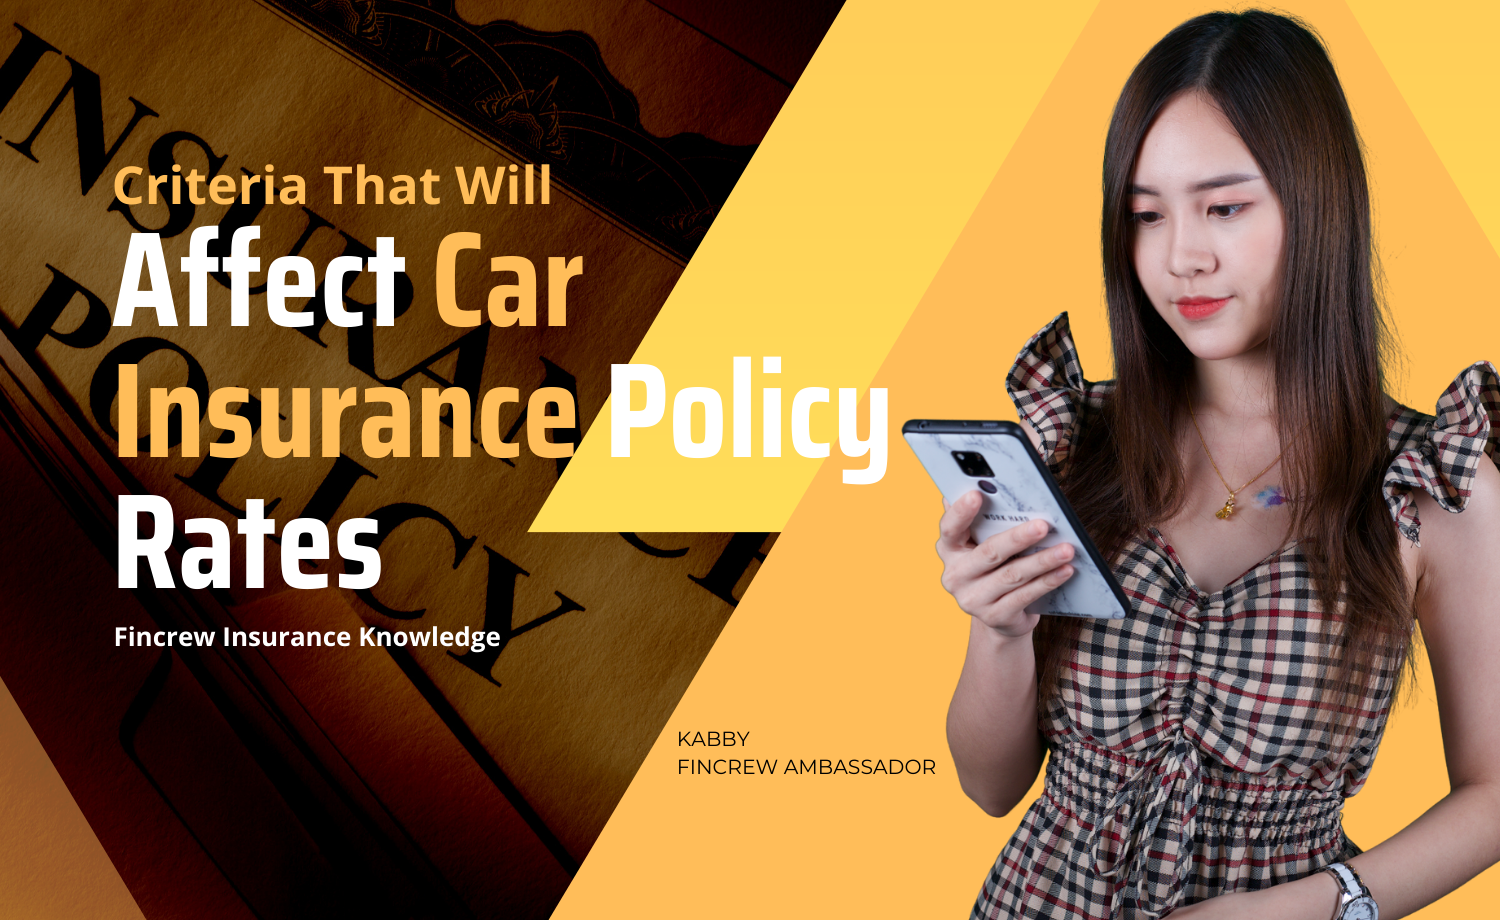 Criteria That Will Affect Car Insurance Policy Rates Blog Featured Image